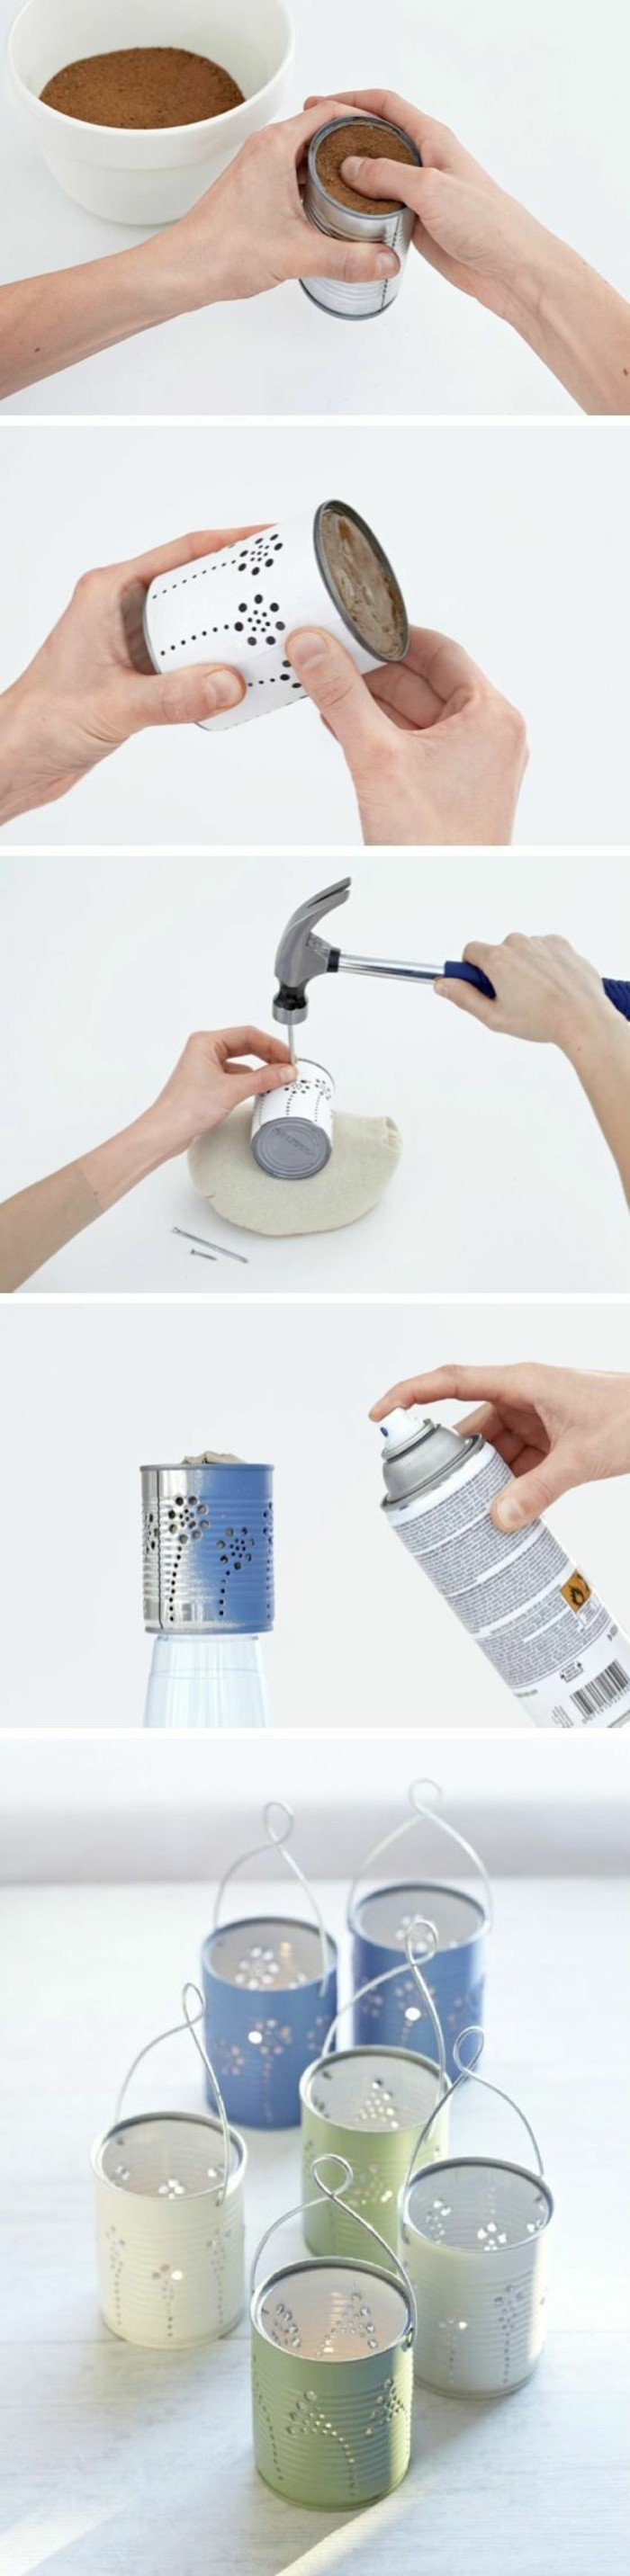 empty tin cans, six luminaries made from cans colored in light green and blue, hands filling can with dirt, making holes following a pattern with nail and hammer, spraying can with blue paint